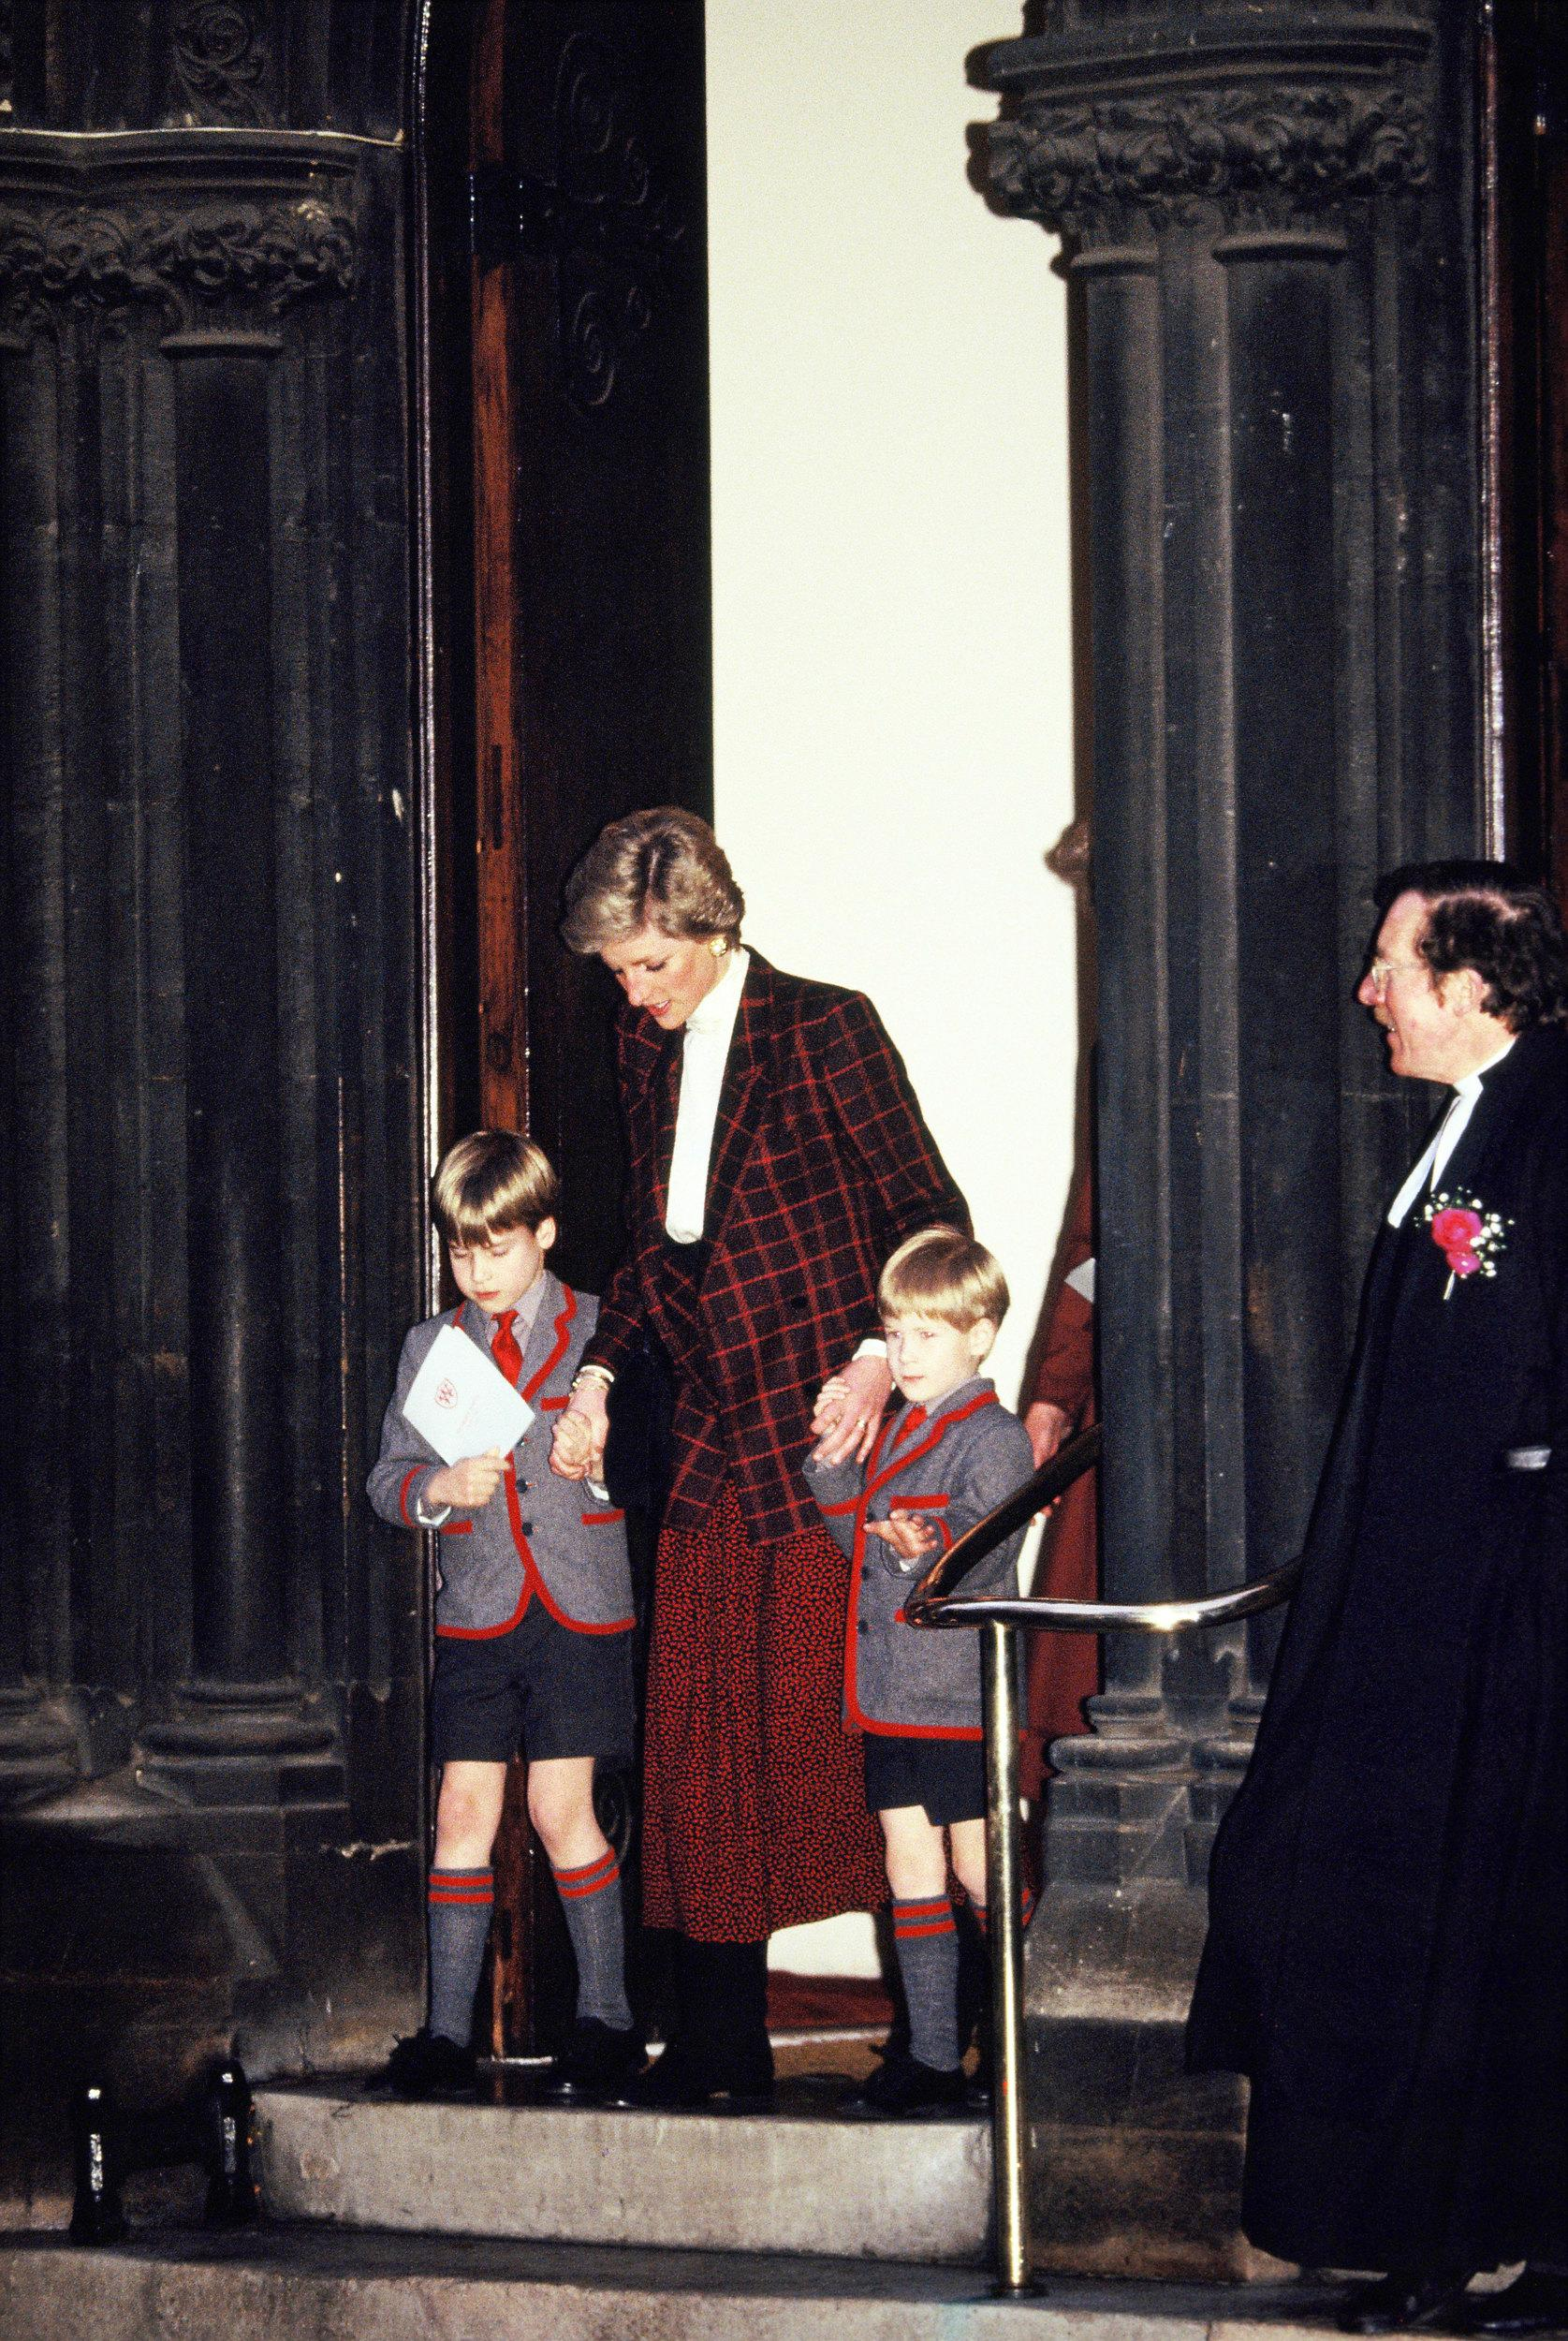 LONDON, UNITED KINGDOM - DECEMBER 13:  Diana (C), Princess of Wales, takes her sons Prince William (L) and Prince Harry (R) to the Christmas Carol Concert at Wetherby School on December 13, 1989 in London, England.  (Photo by Georges De Keerle/Getty Images)